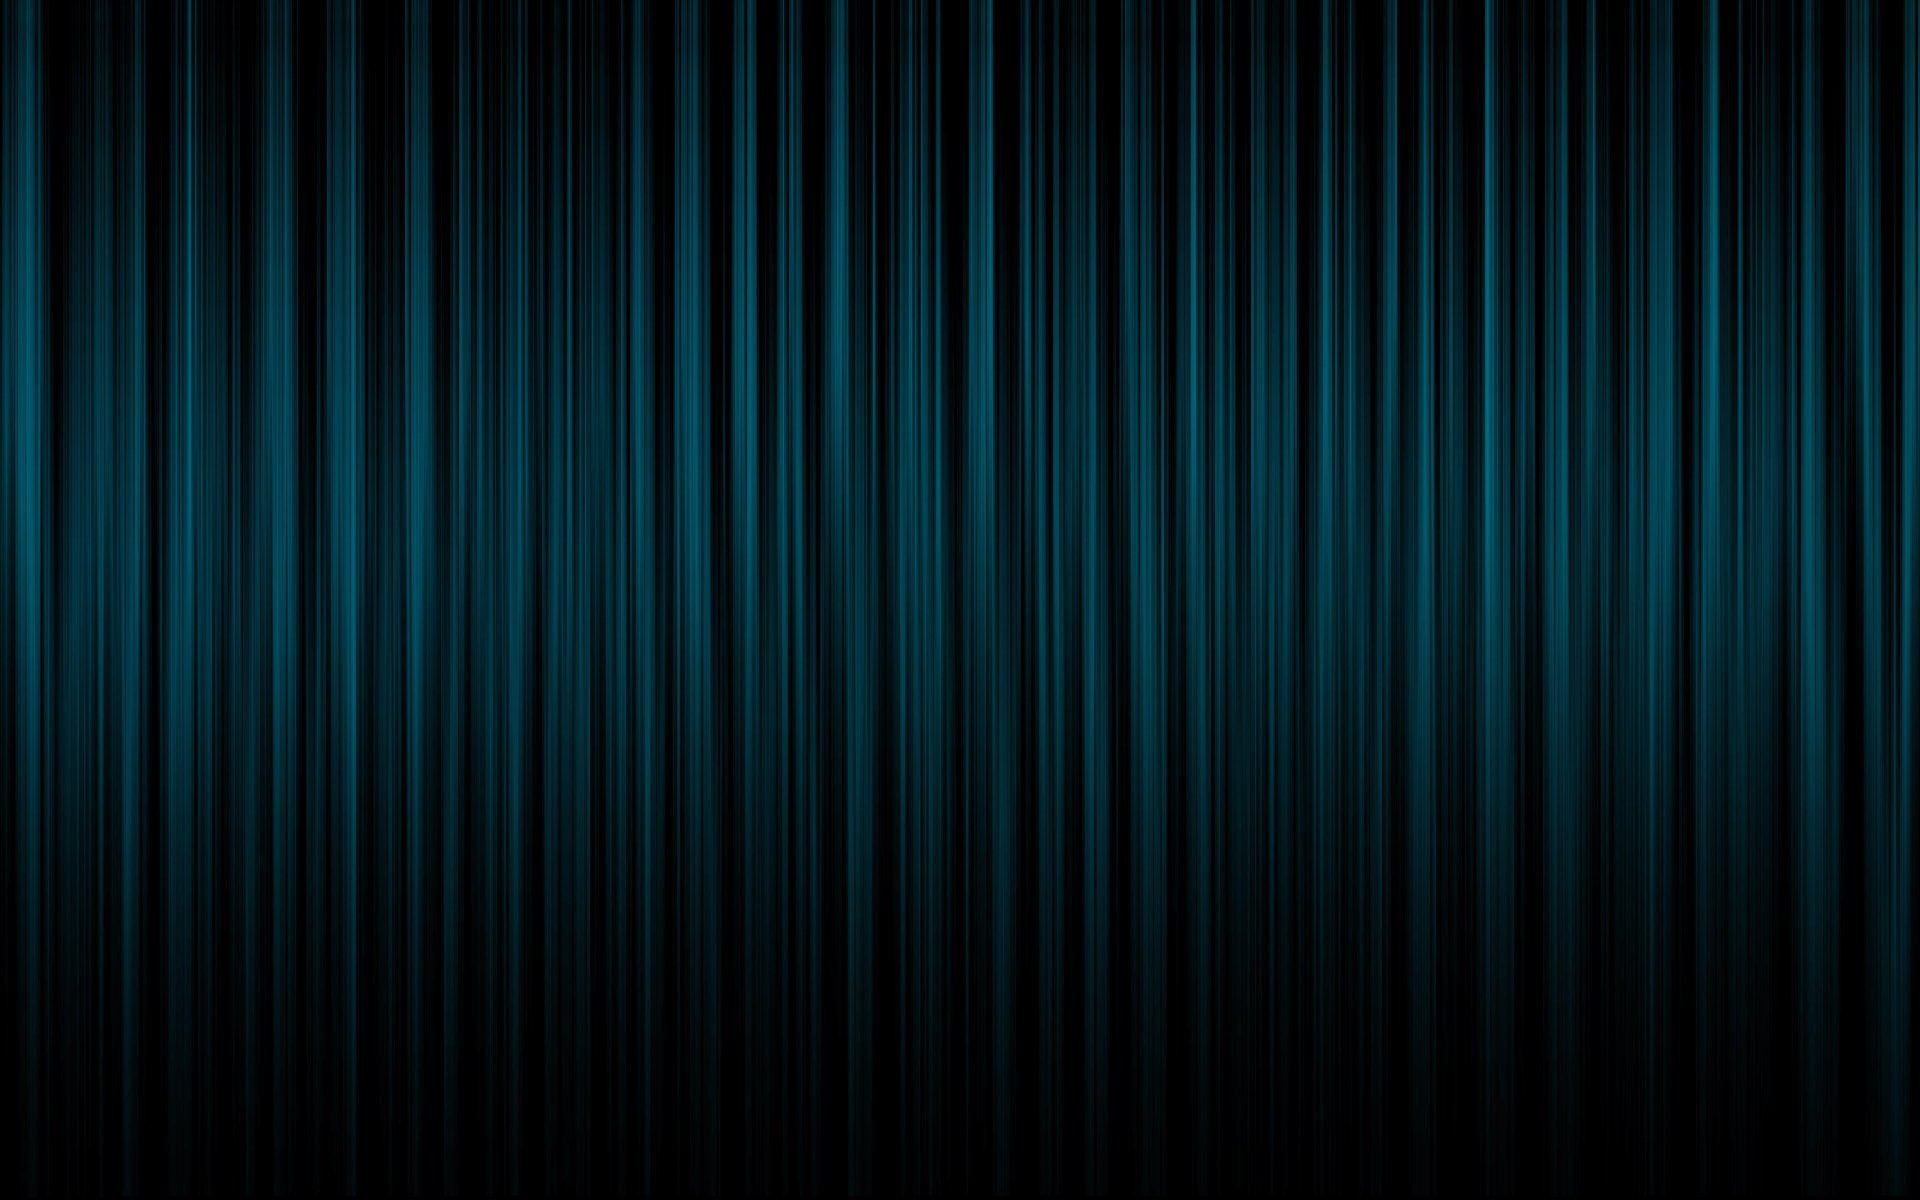 Black Curtain Wallpaper